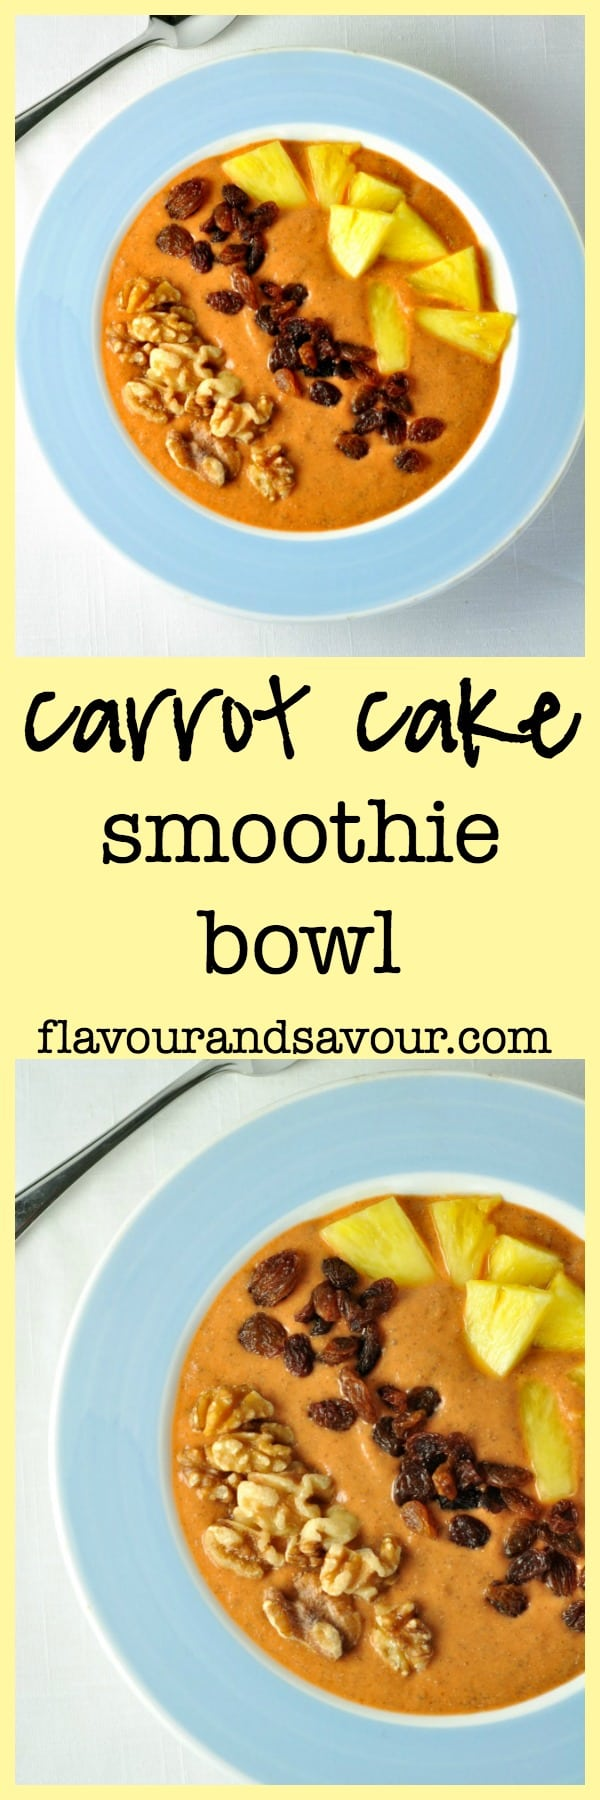 Healthy Paleo Carrot Cake Smoothie Bowl. Who says you can't have carrot cake for breakfast? |www.flavourandsavour.com